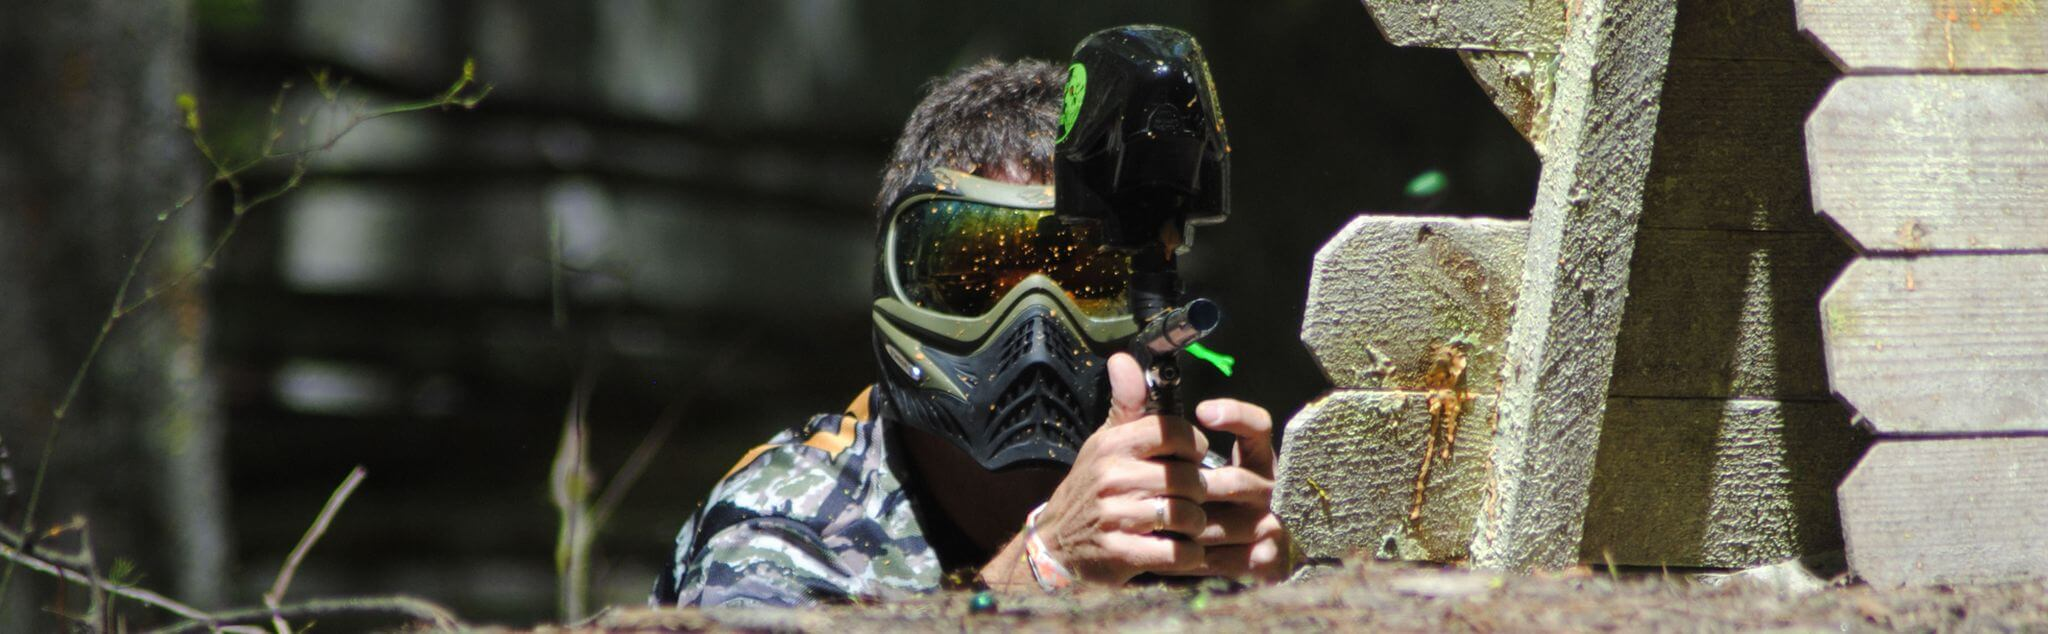 Paintball a Mazara del Vallo